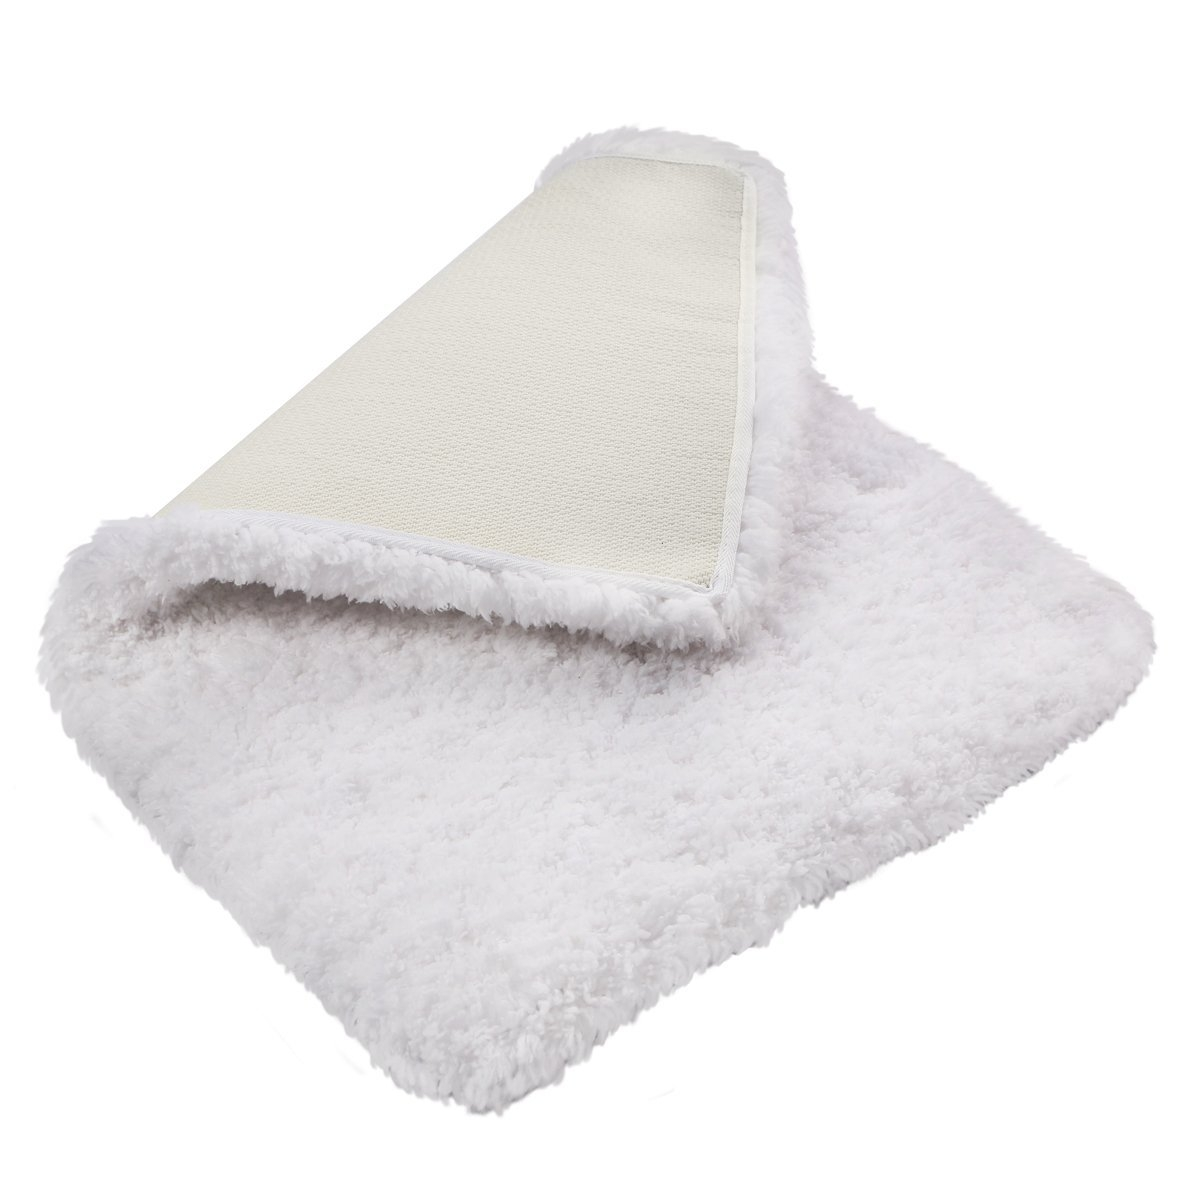 Permalink to Luxury Black And White Bath Mats